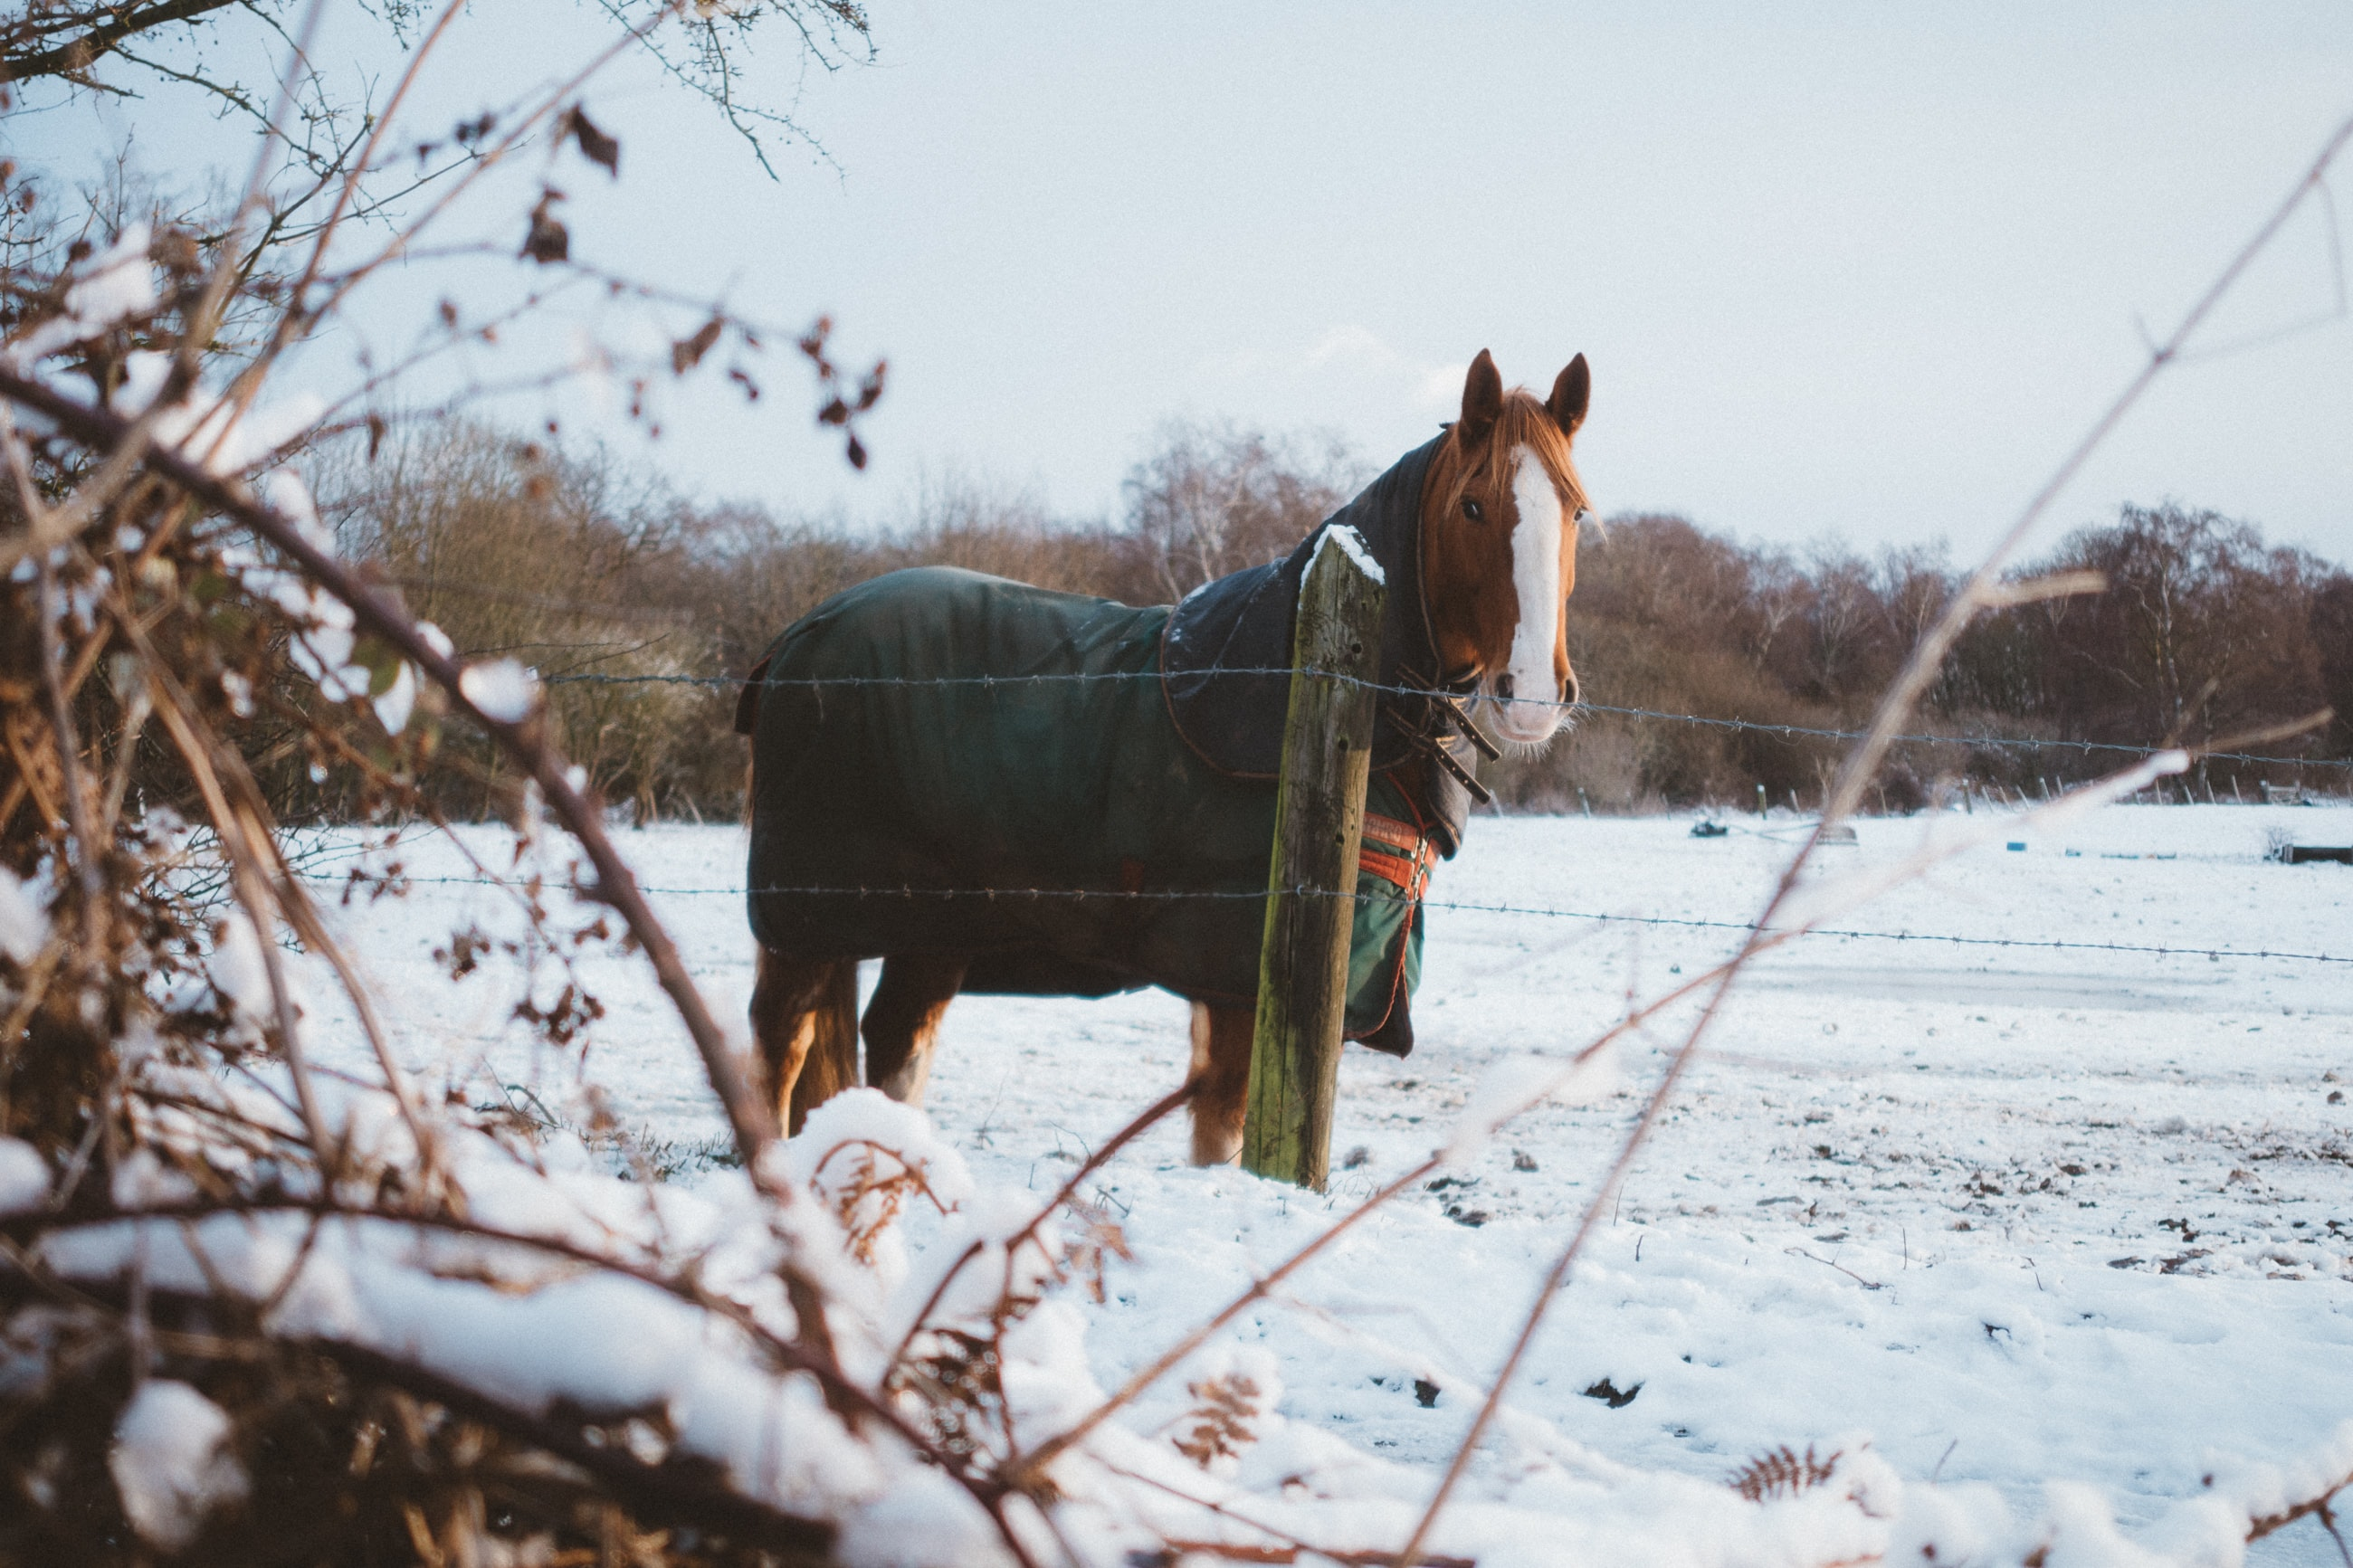 A chestnut horse with a white head marking draped in a green blanket in an enclosure with snow covering the ground